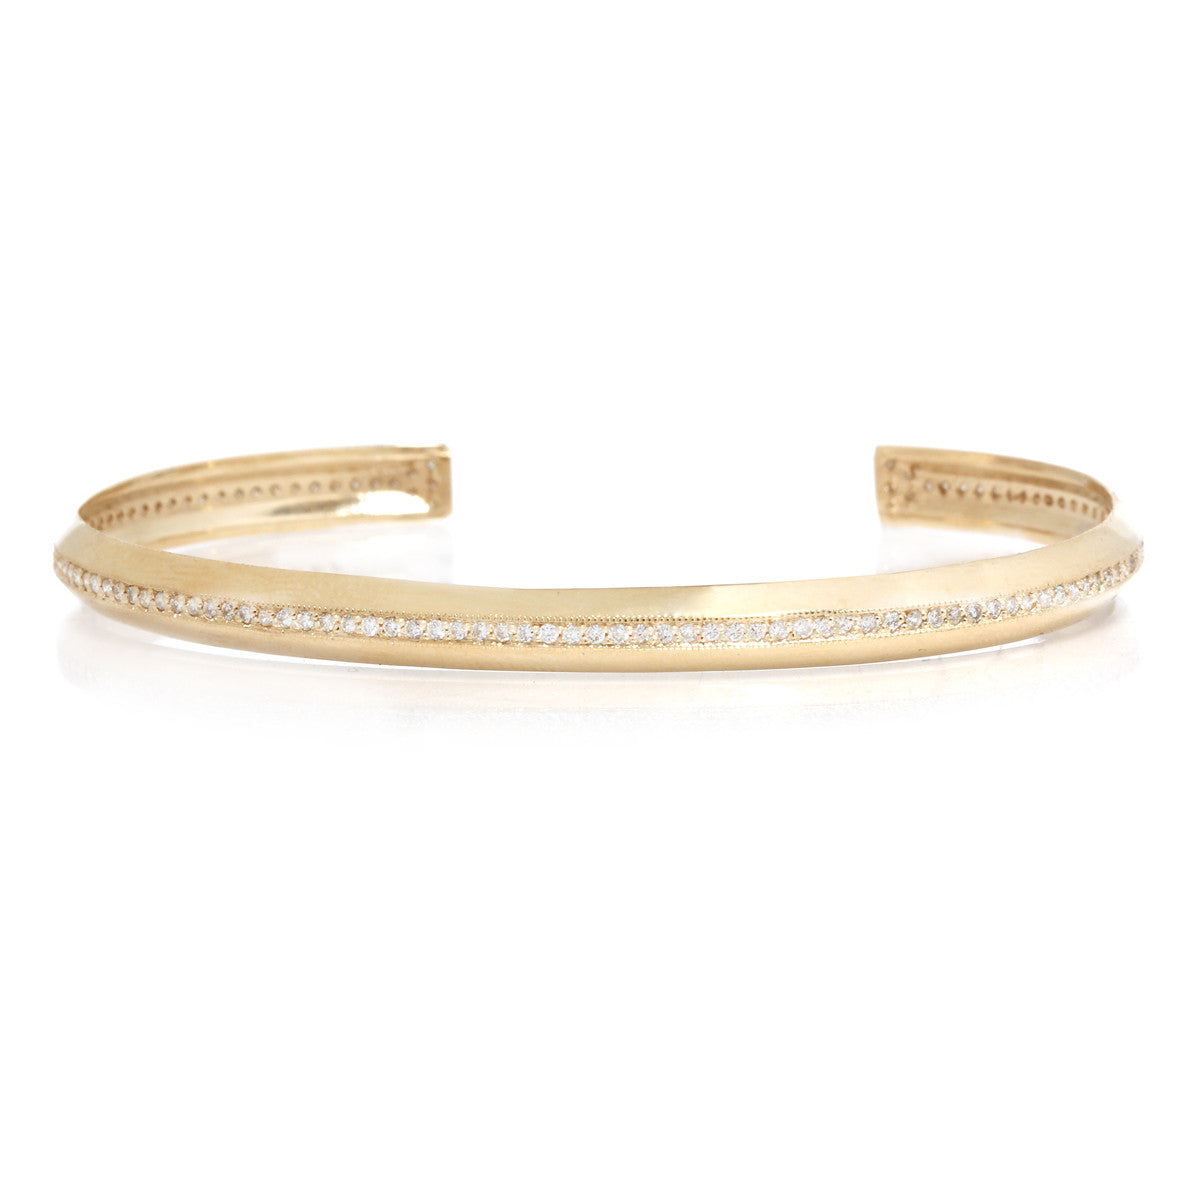 14k pave line knife edge cuff